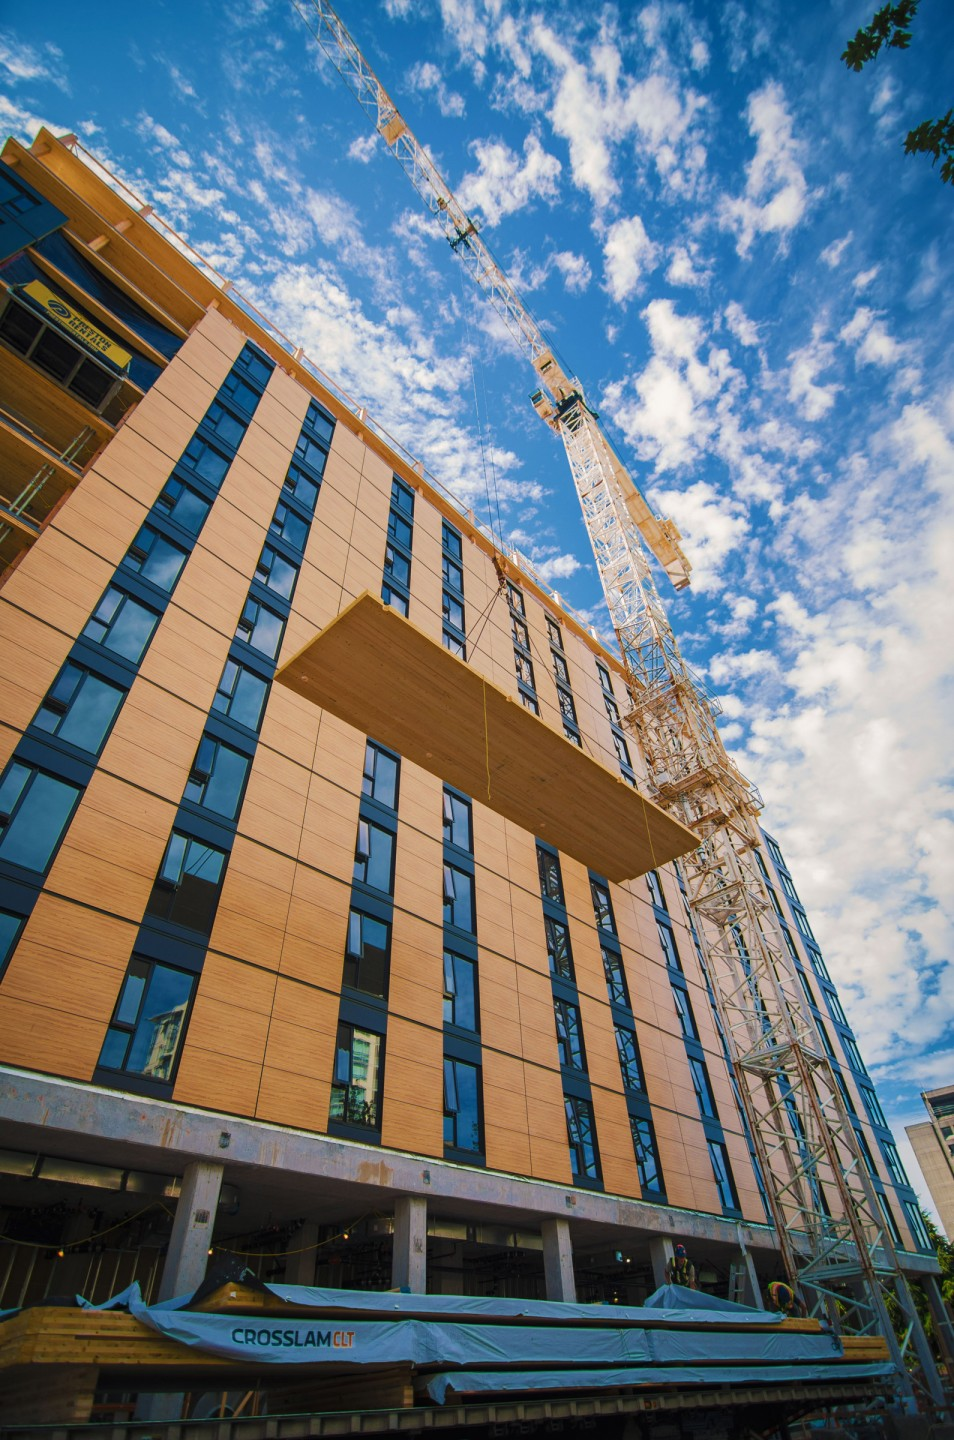 Brock Commons, a student residence hall at the University of British Columbia in Vancouver, Canada